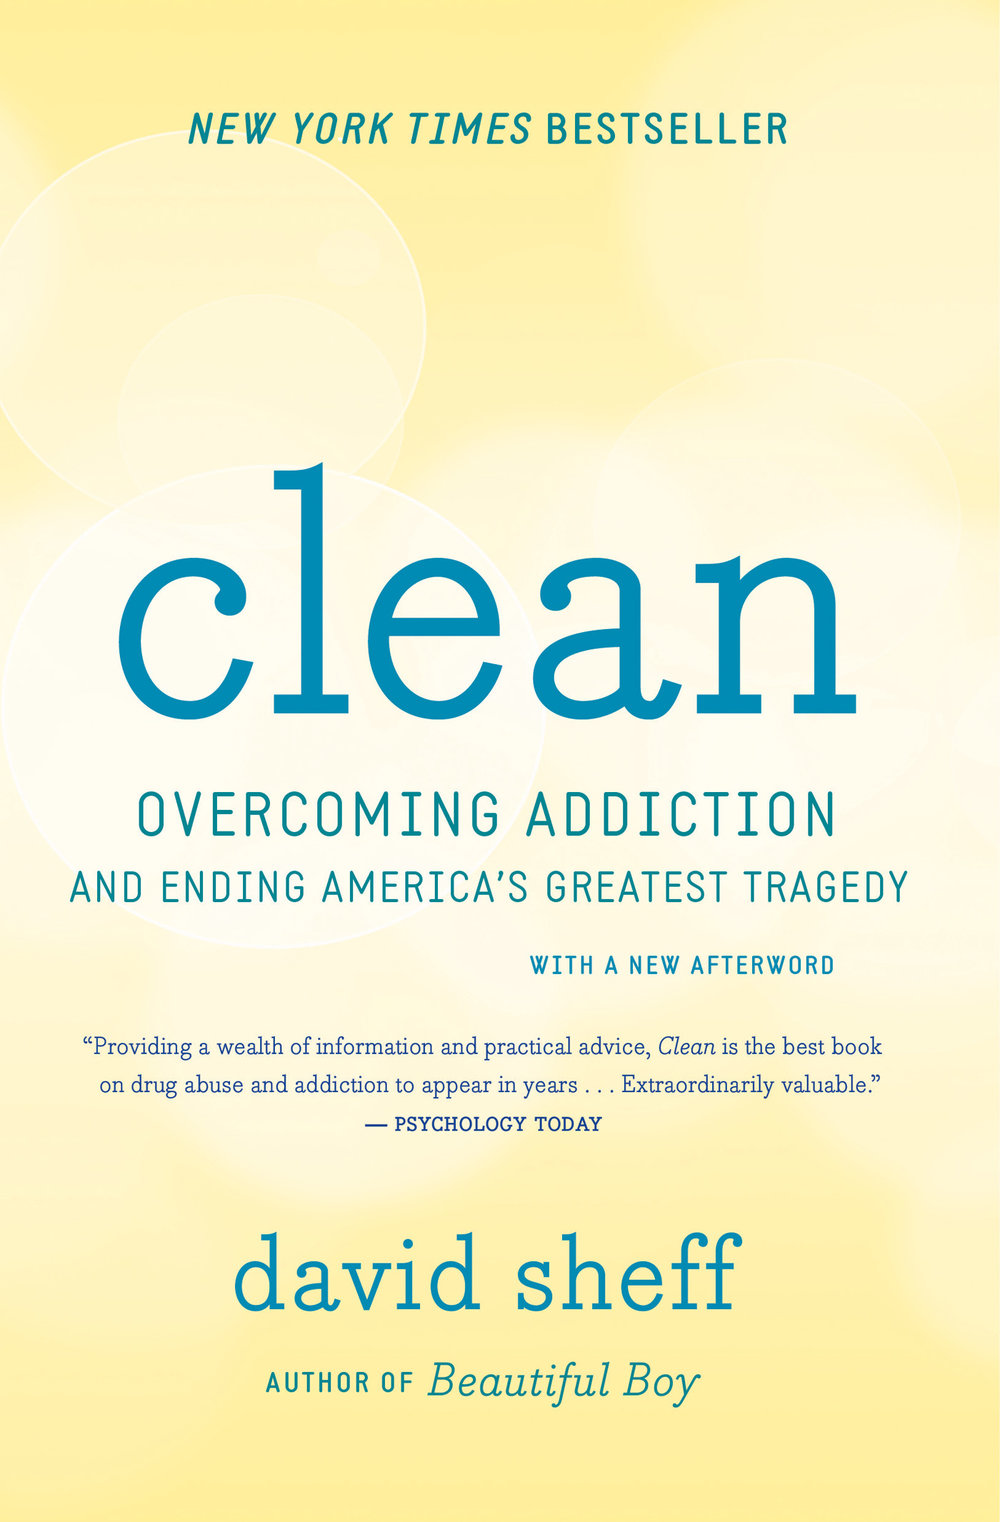 clean - OVERCOMING ADDICTION AND ENDING AMERICA'S GREATEST TRAGEDYAddiction is a preventable, treatable disease, not a moral failing. As with other illnesses, the approaches most likely to work are based on science — not on faith, tradition, contrition, or wishful thinking. These facts are the foundation of Clean, a myth-shattering look at drug abuse by the author of Beautiful Boy. Based on the latest research in psychology, neuroscience, and medicine, Clean is a leap beyond the traditional approaches to prevention and treatment of addiction and the mental illnesses that usually accompany it. The existing treatment system, including Twelve Step programs and rehabs, has helped some, but it has failed to help many more, and David Sheff explains why. He spent time with scores of scientists, doctors, counselors, and addicts and their families to learn how addiction works and what can effectively treat it. Clean offers clear, cogent counsel for parents and others who want to prevent drug problems and for addicts and their loved ones no matter what stage of the illness they're in. But it is also a book for all of us — a powerful rethinking of the greatest public health challenge of our time.